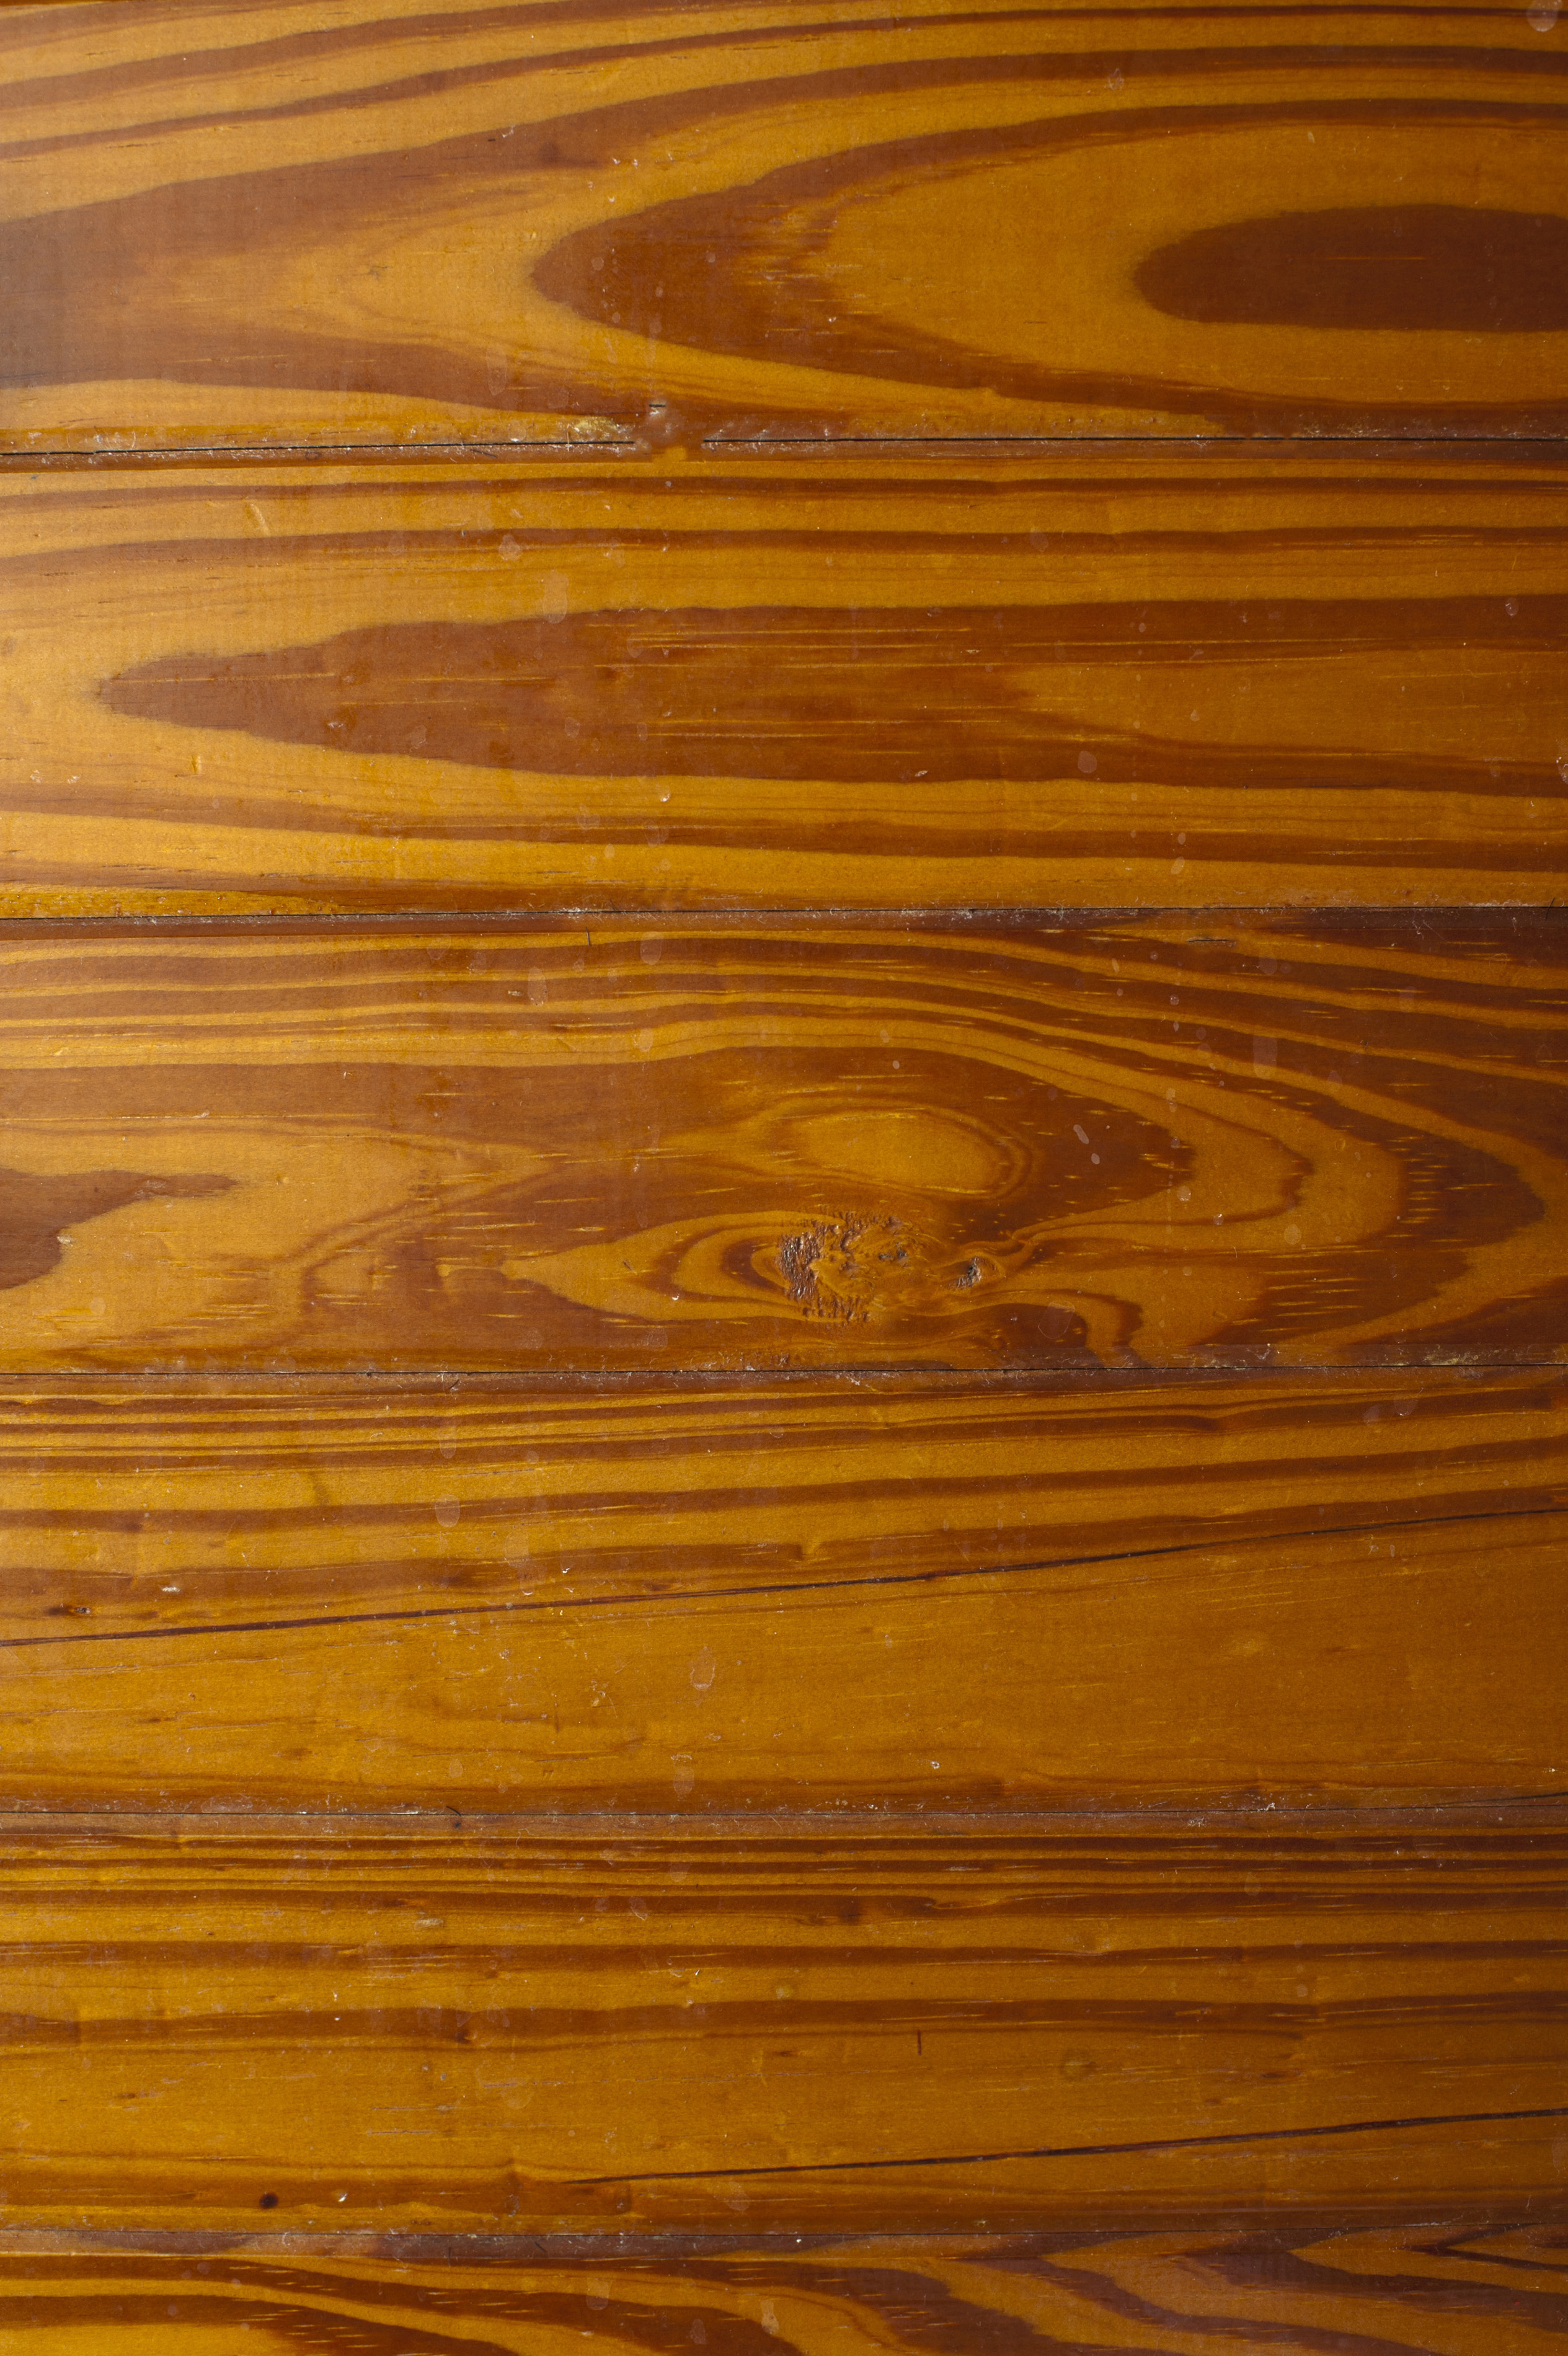 tangentially cut wood grain in some decorative wood paneling